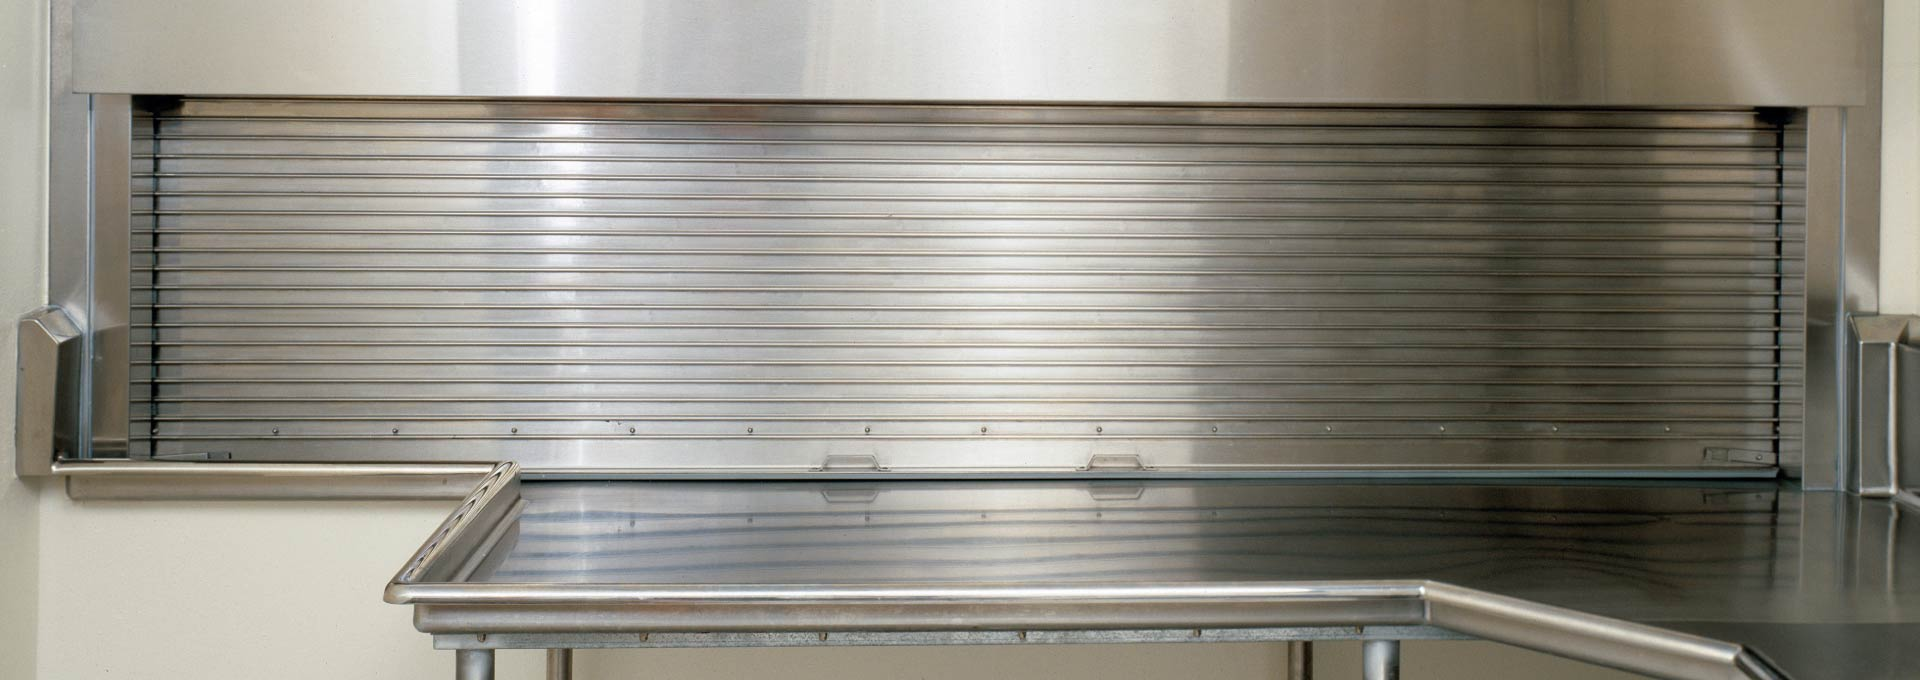 Comprehensive system of counter doors encompasses three basic types -- metal curtain, wood curtain and integral frame and sill